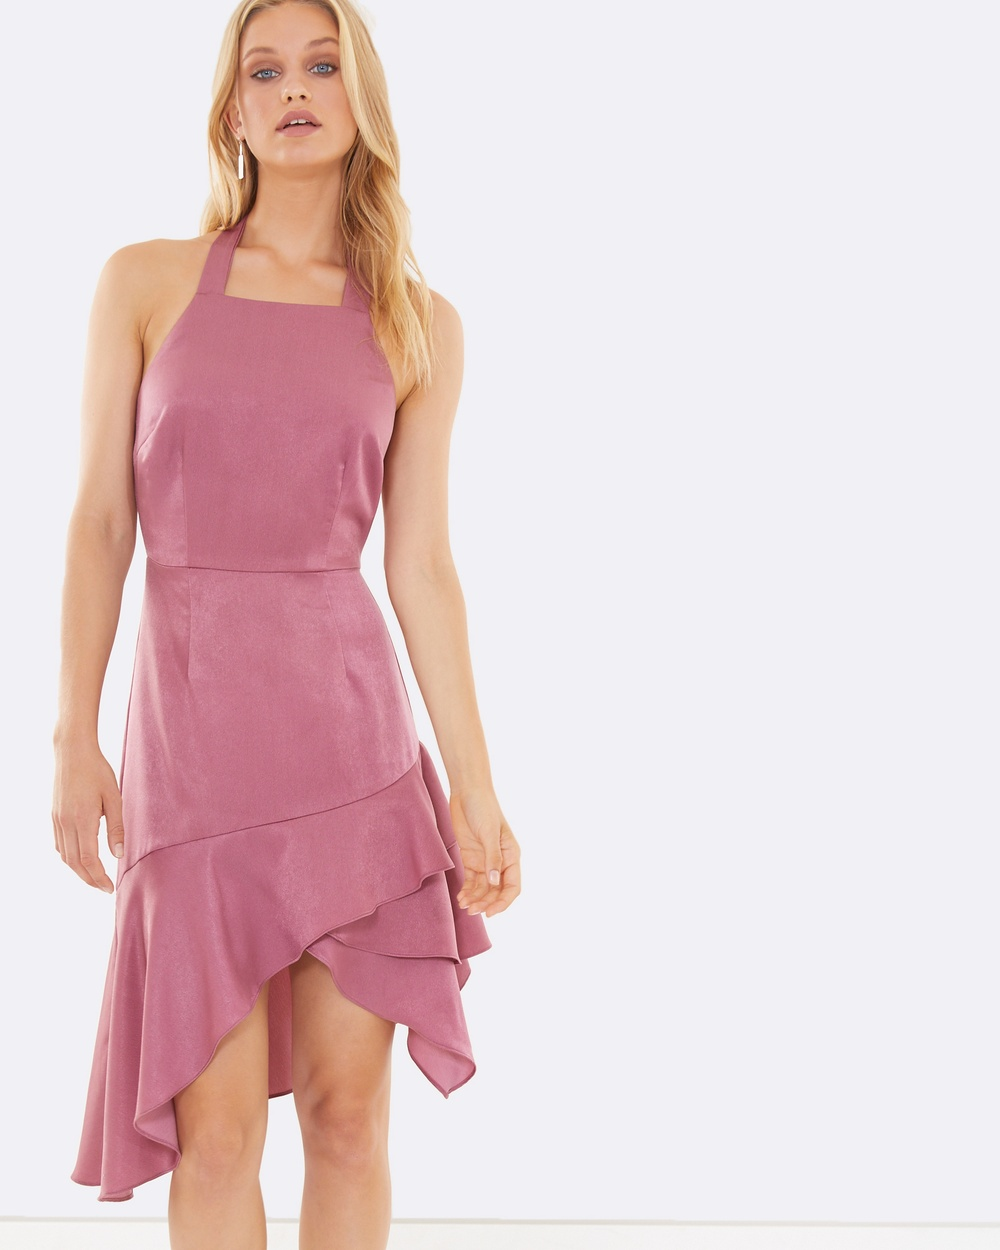 Calli Selena Frill Dress Dresses Pink Selena Frill Dress